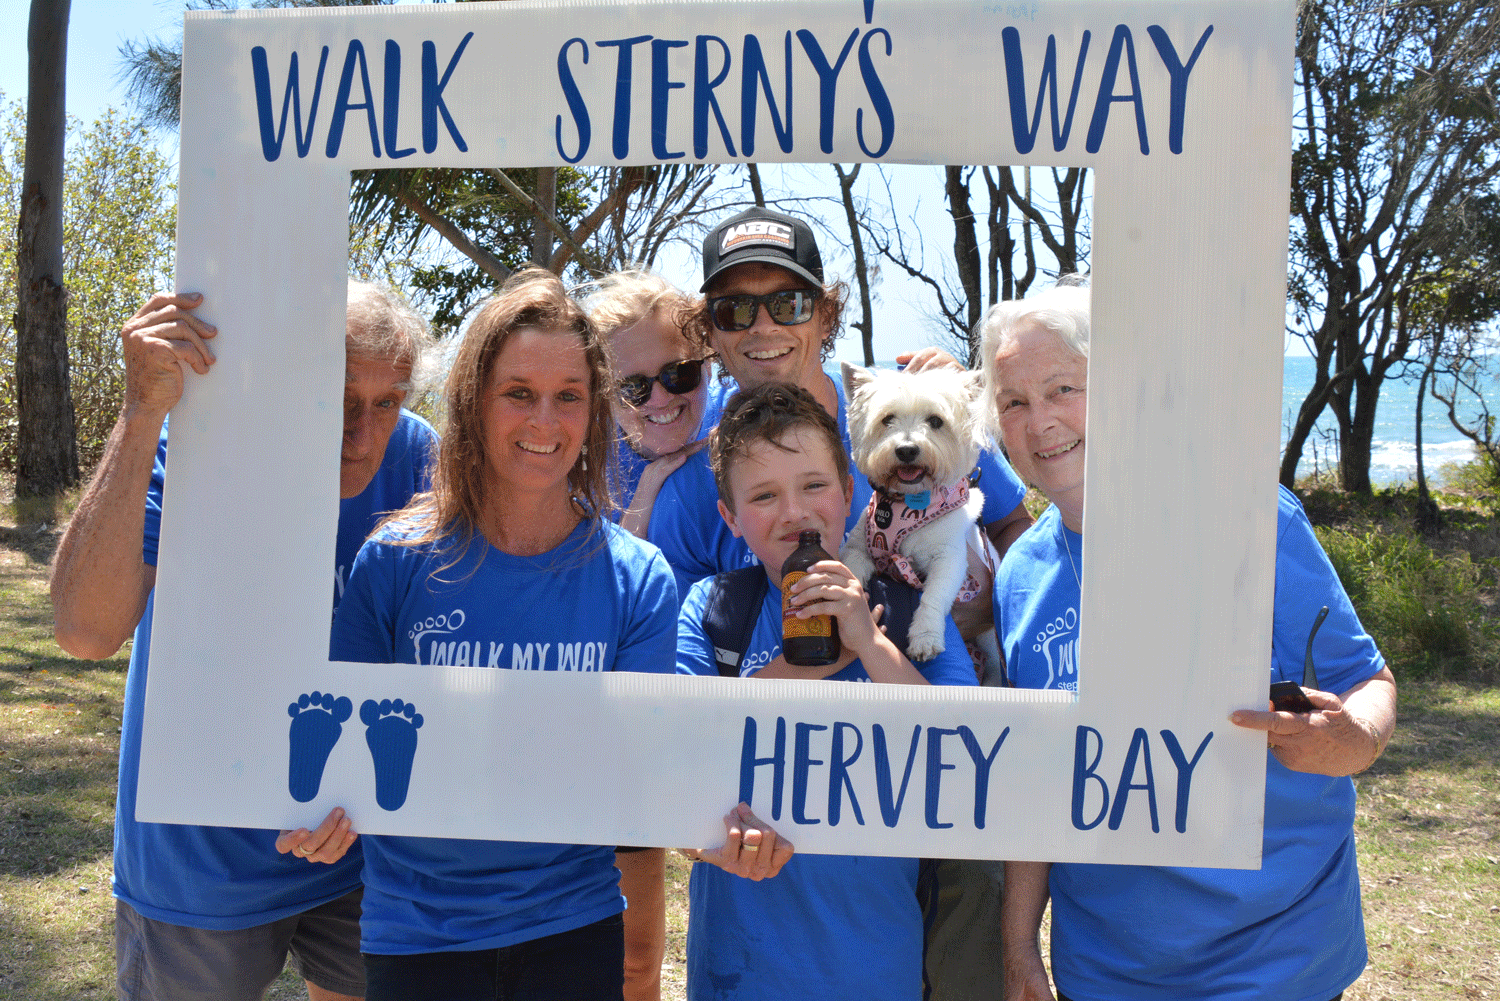 Christian's wife Tanya and son Jasper, with extended family. Jasper told Walkers: 'Dad's vision was to host a walk here in Hervey Bay … I'm proud to be part of it, and I hope you are too.'